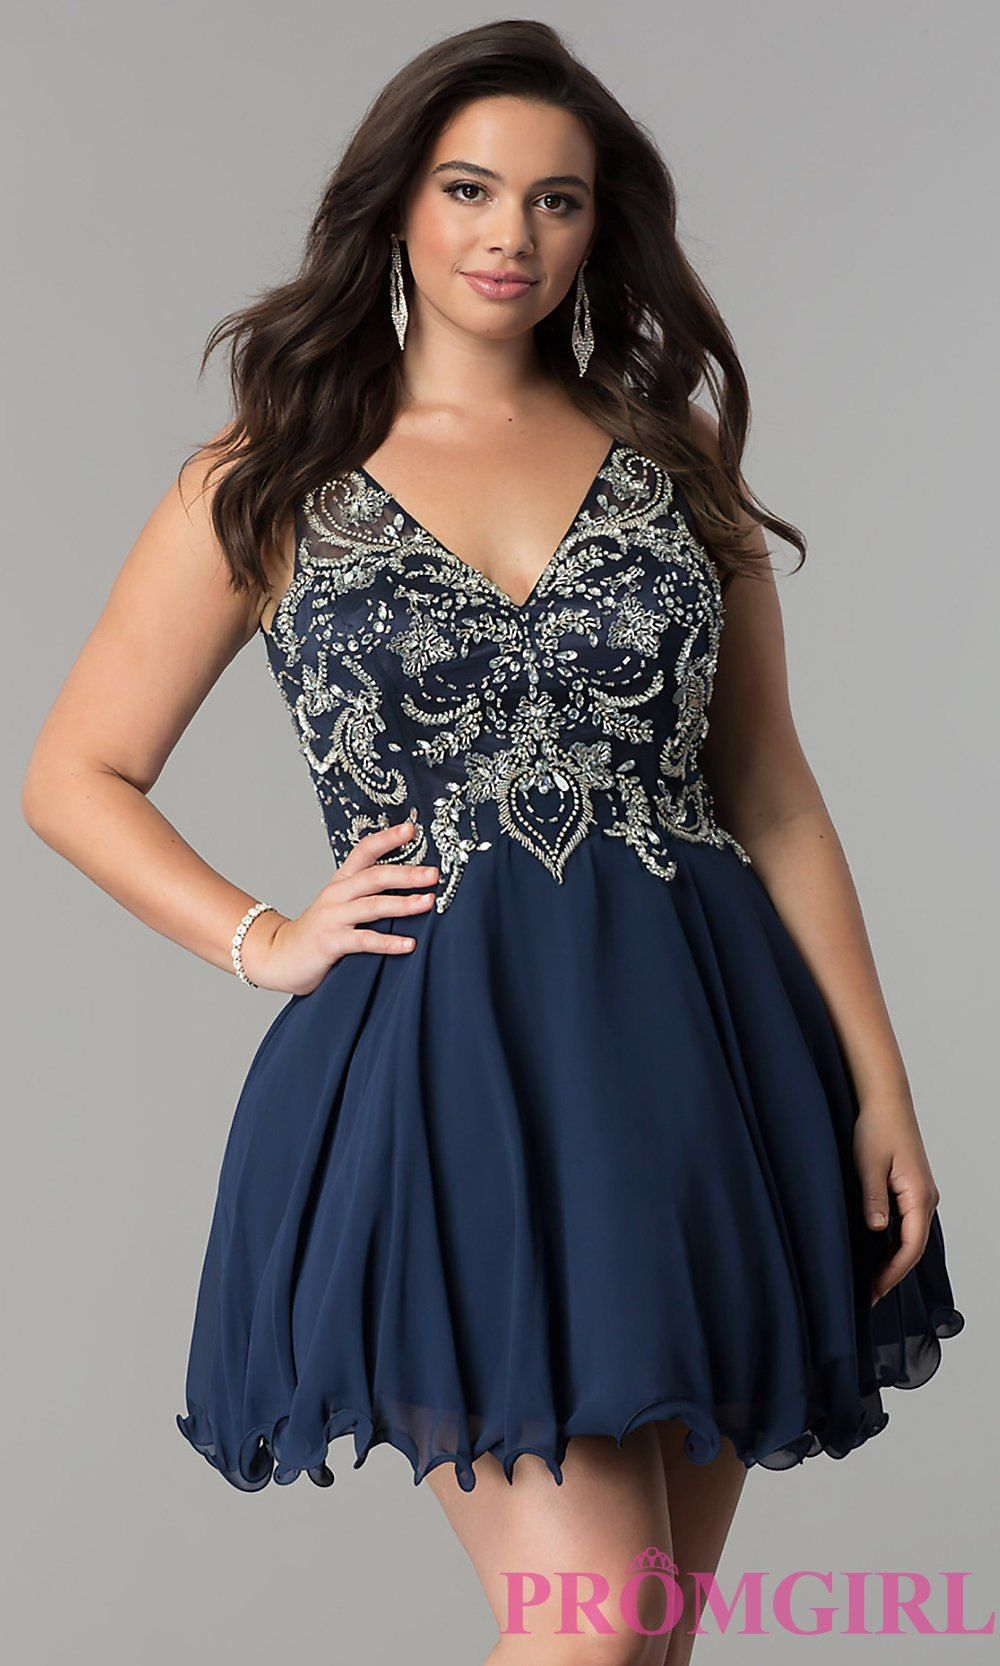 Aline short plussize homecoming dress promgirl riley ticotin